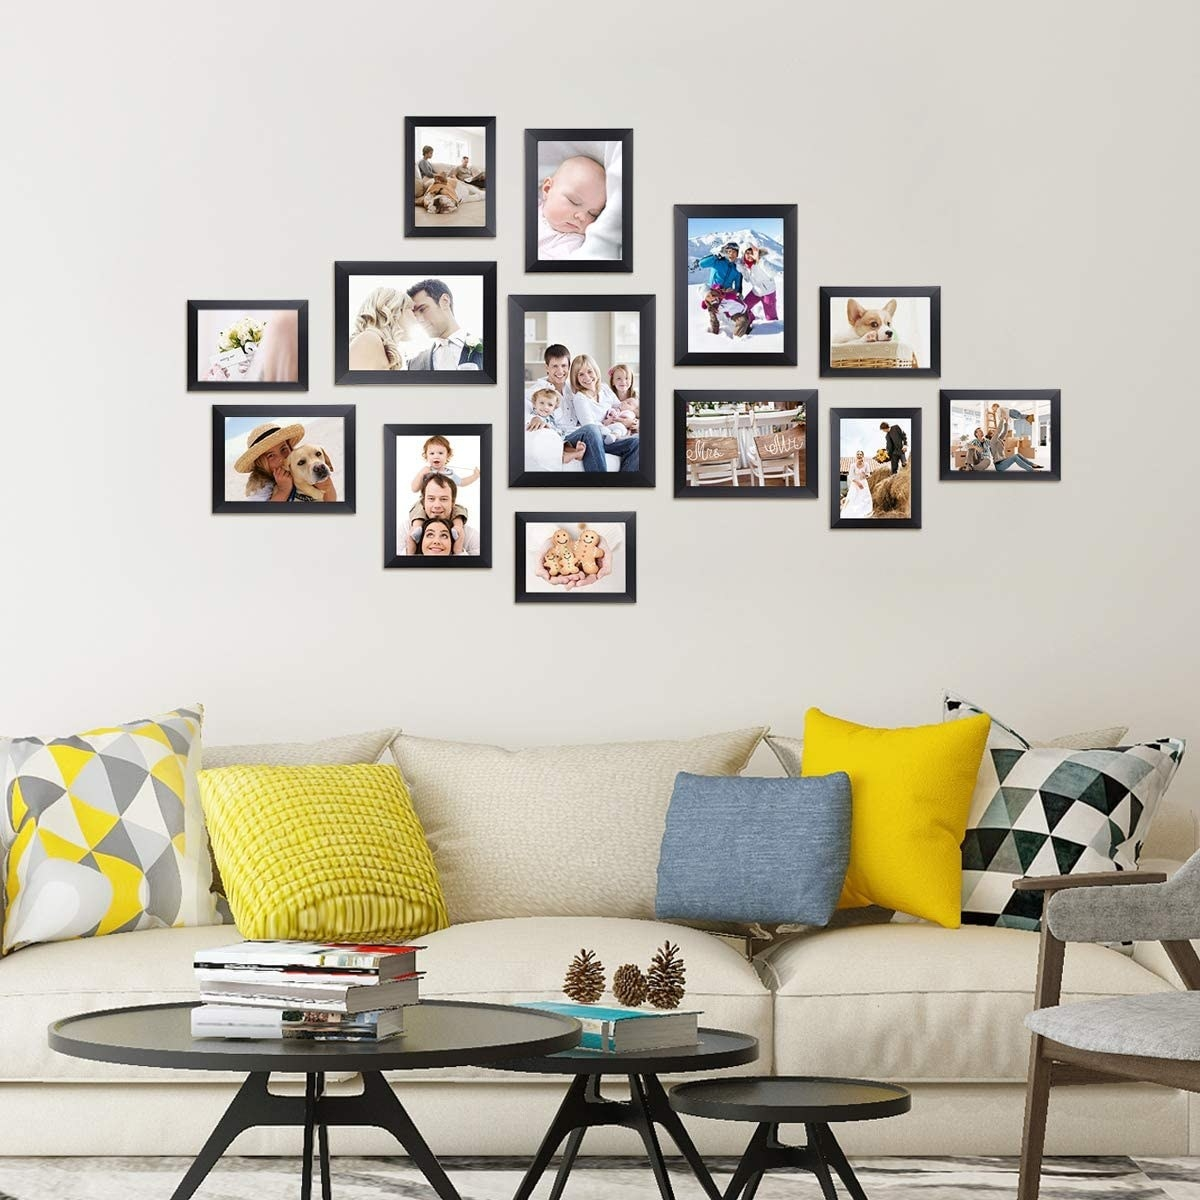 A set of differently sized and oriented photo frames on a wall